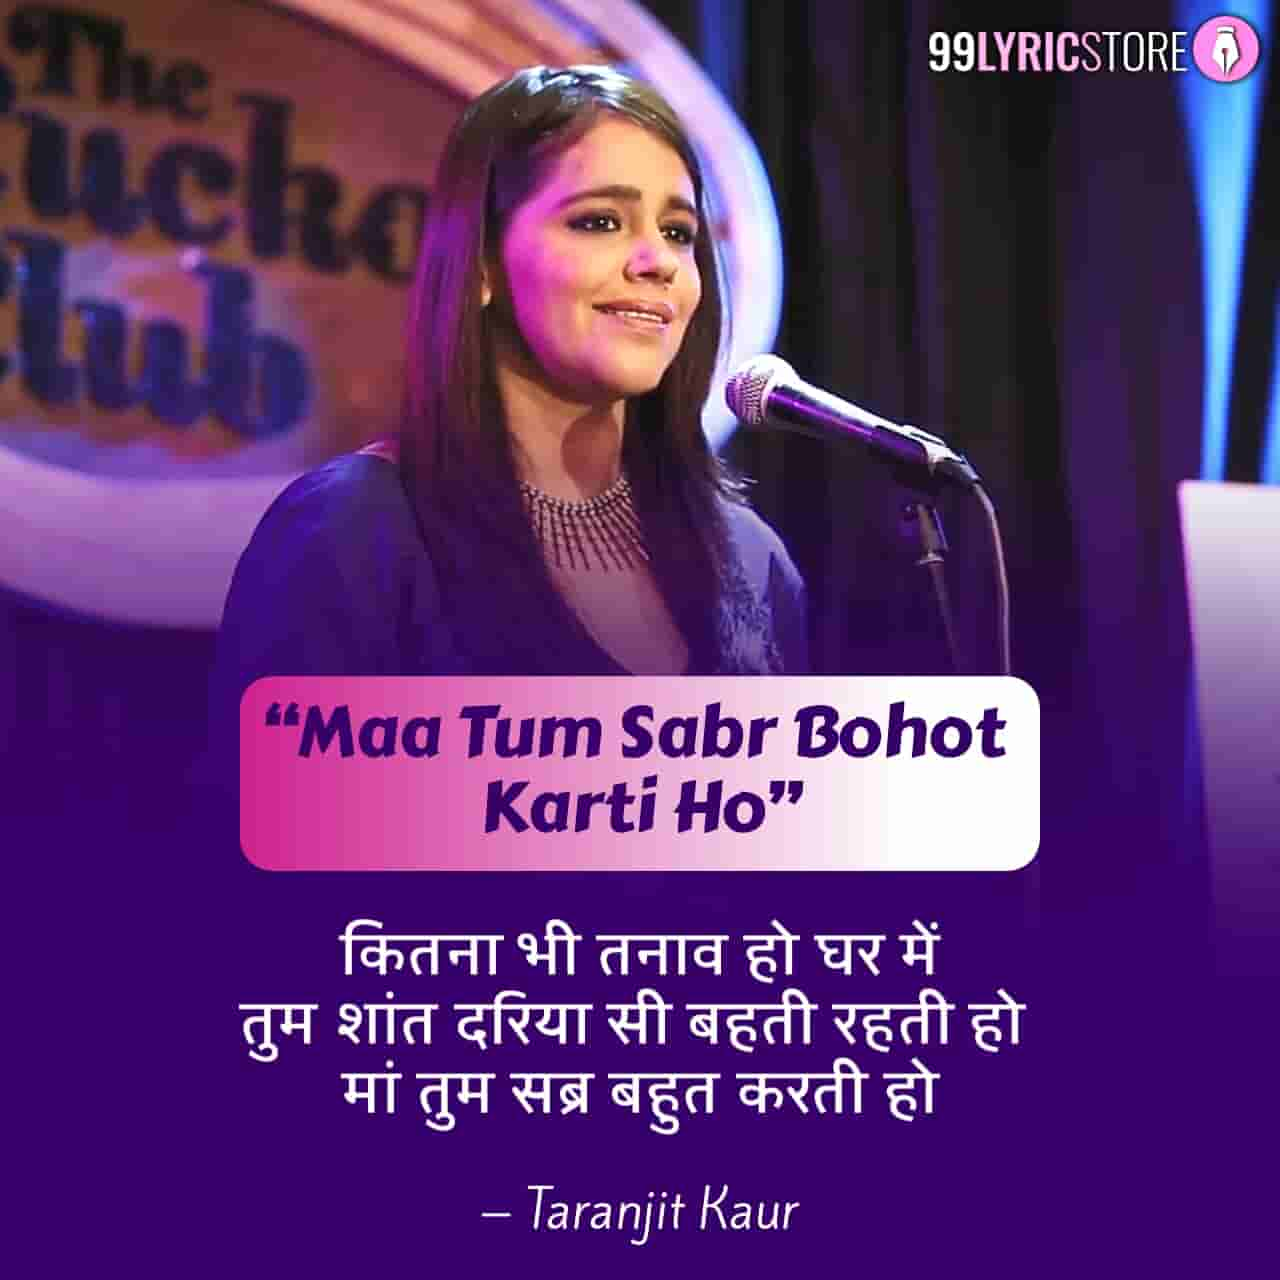 This beautiful poem 'Maa Tum Sabr Bohot Karti Ho' has been written by Taranjit Kaur and has performed so beautifully in the platform of 'Spill Poetry'.